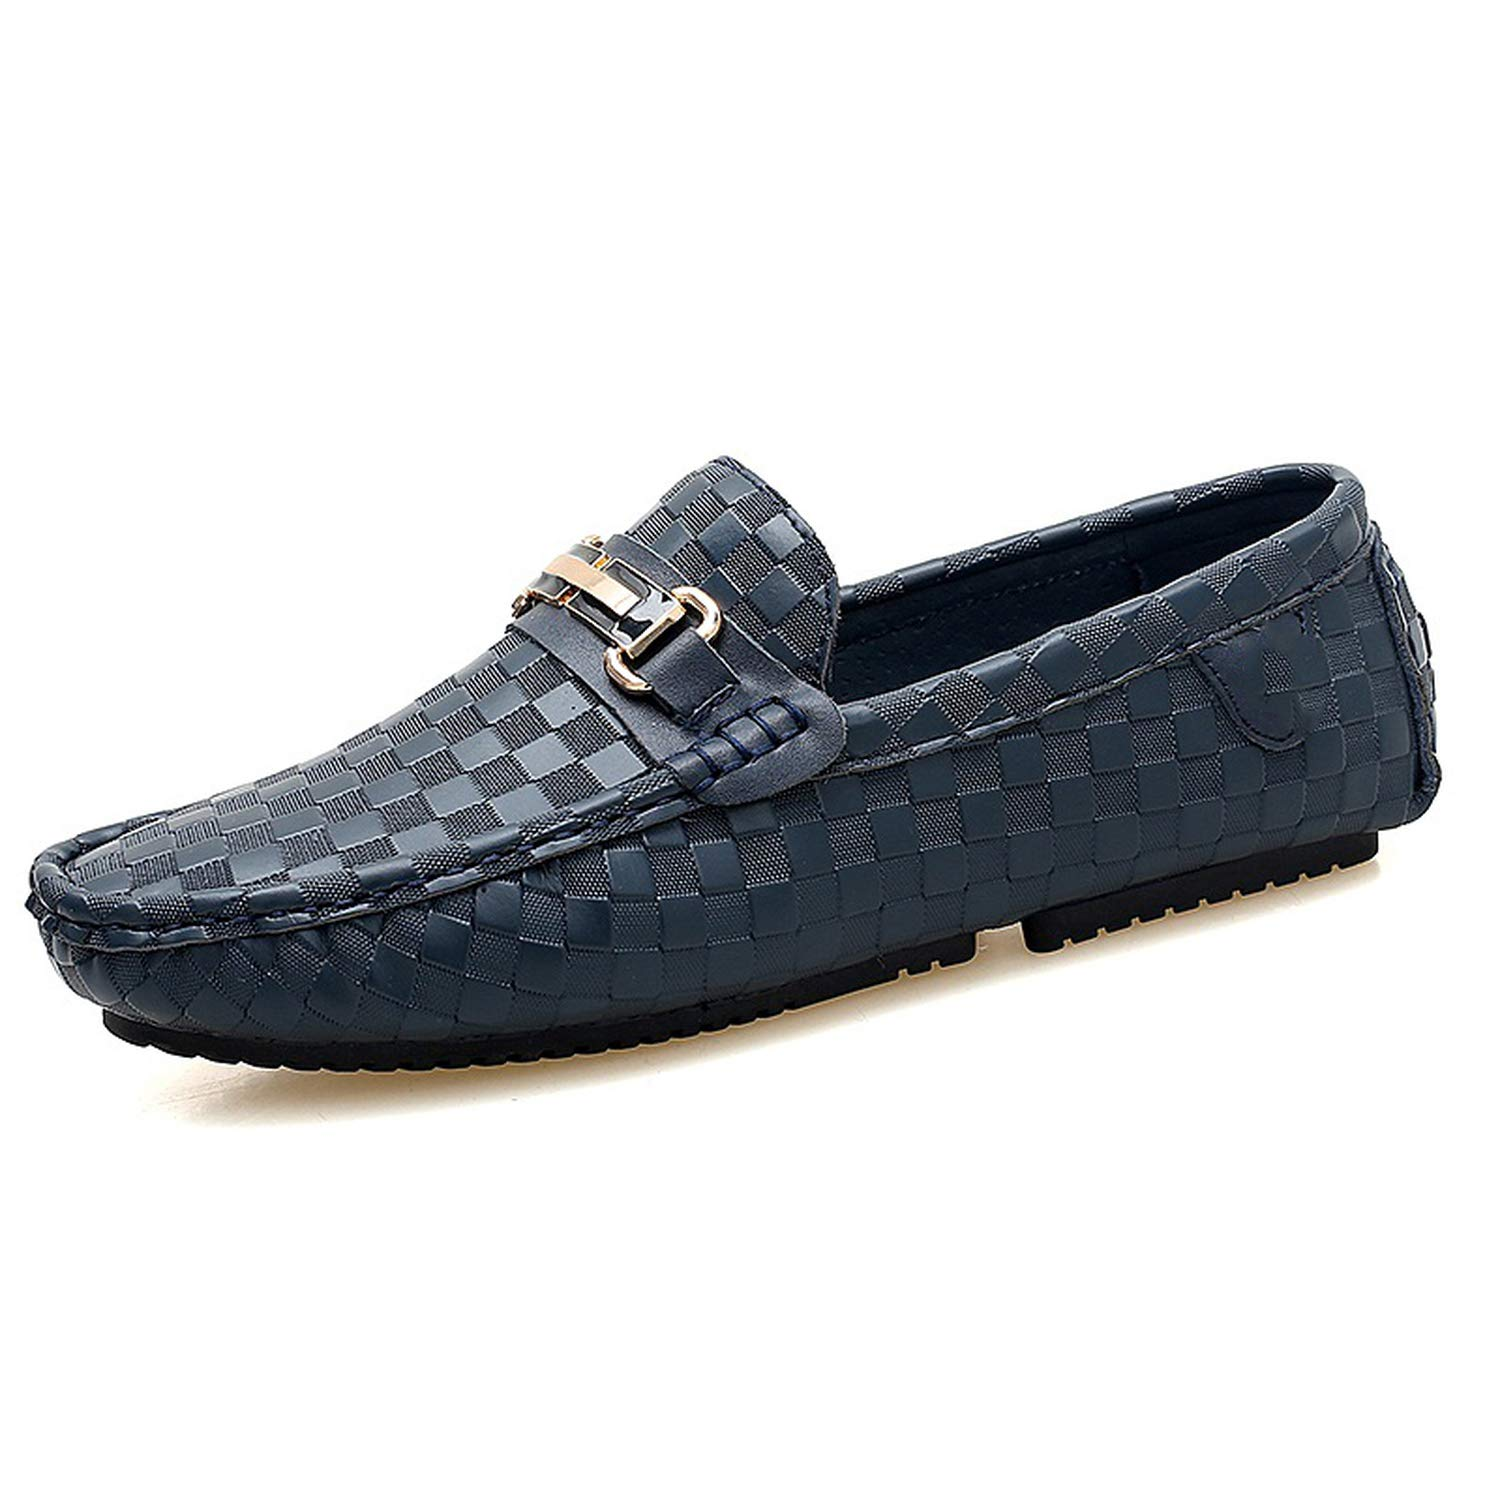 Stay With Me New Big Size Genuine Leather Driving Shoes Men's Office Leisure Leather Doug Shoe Male Flat Loafers Luxury Footwear,Blue,7.5 by Stay With Me